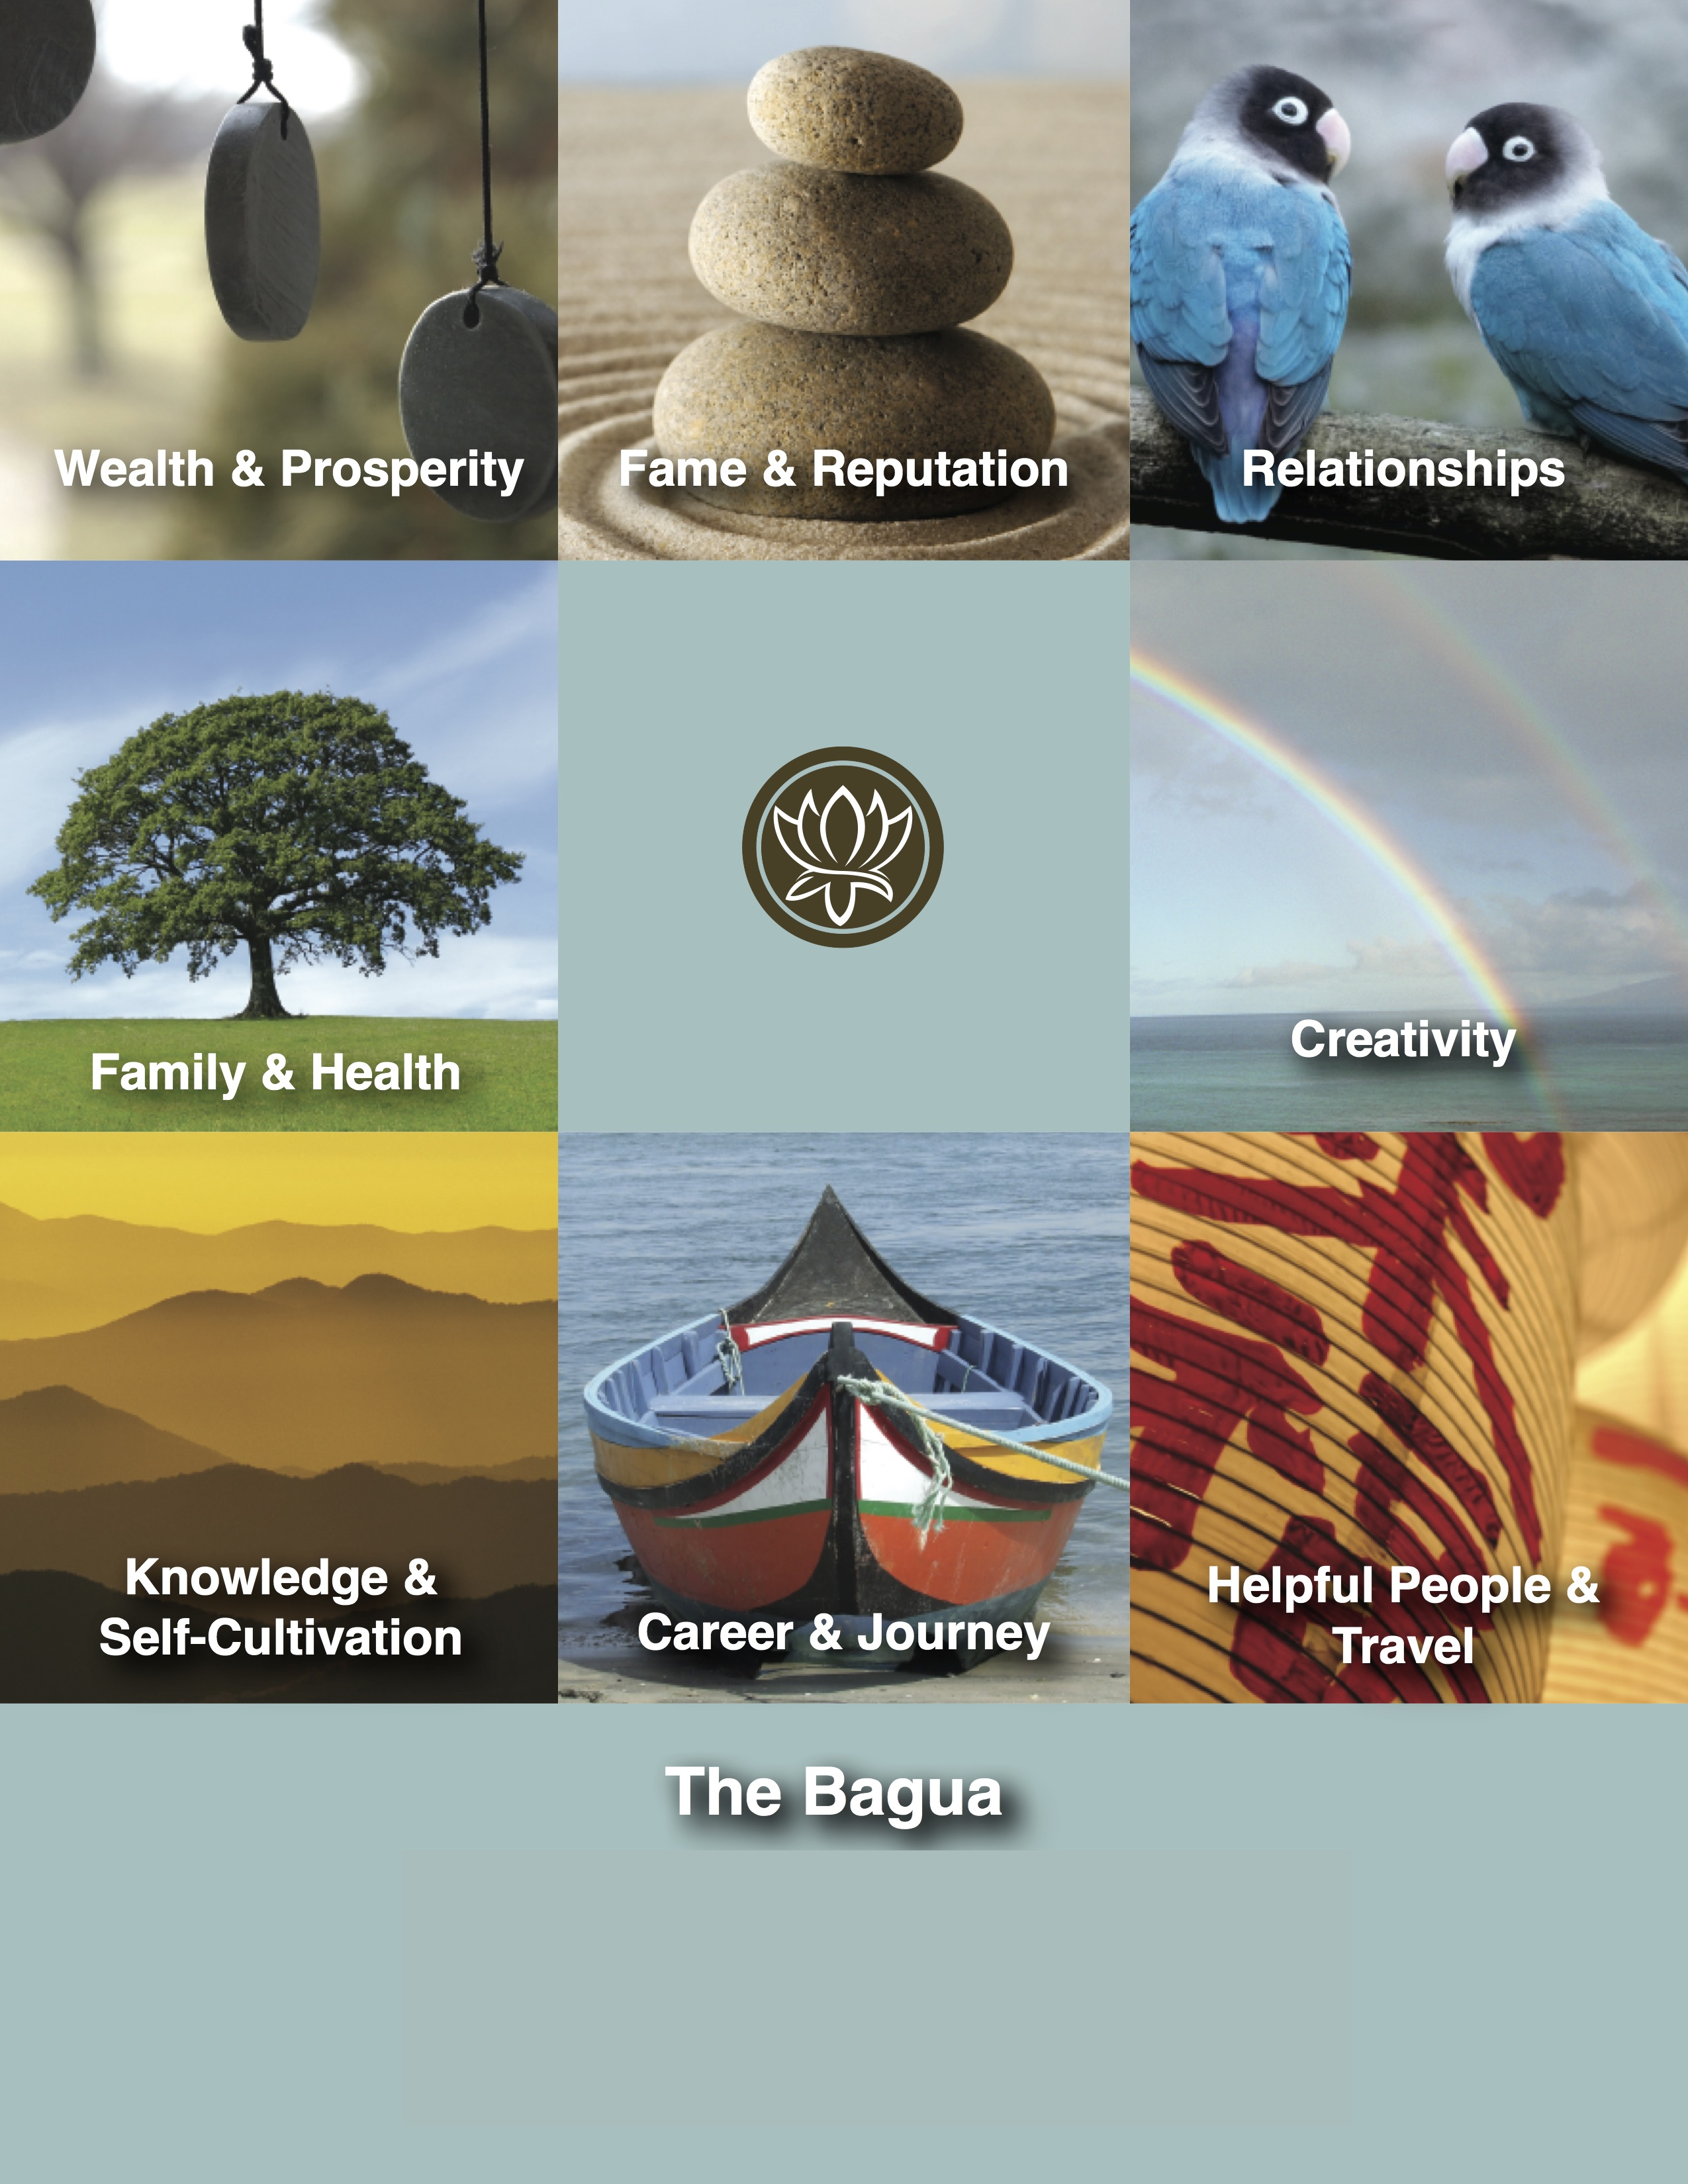 Feng Shui Bagua Vision Board How To Make A Vision Board That Works Thriving Spaces